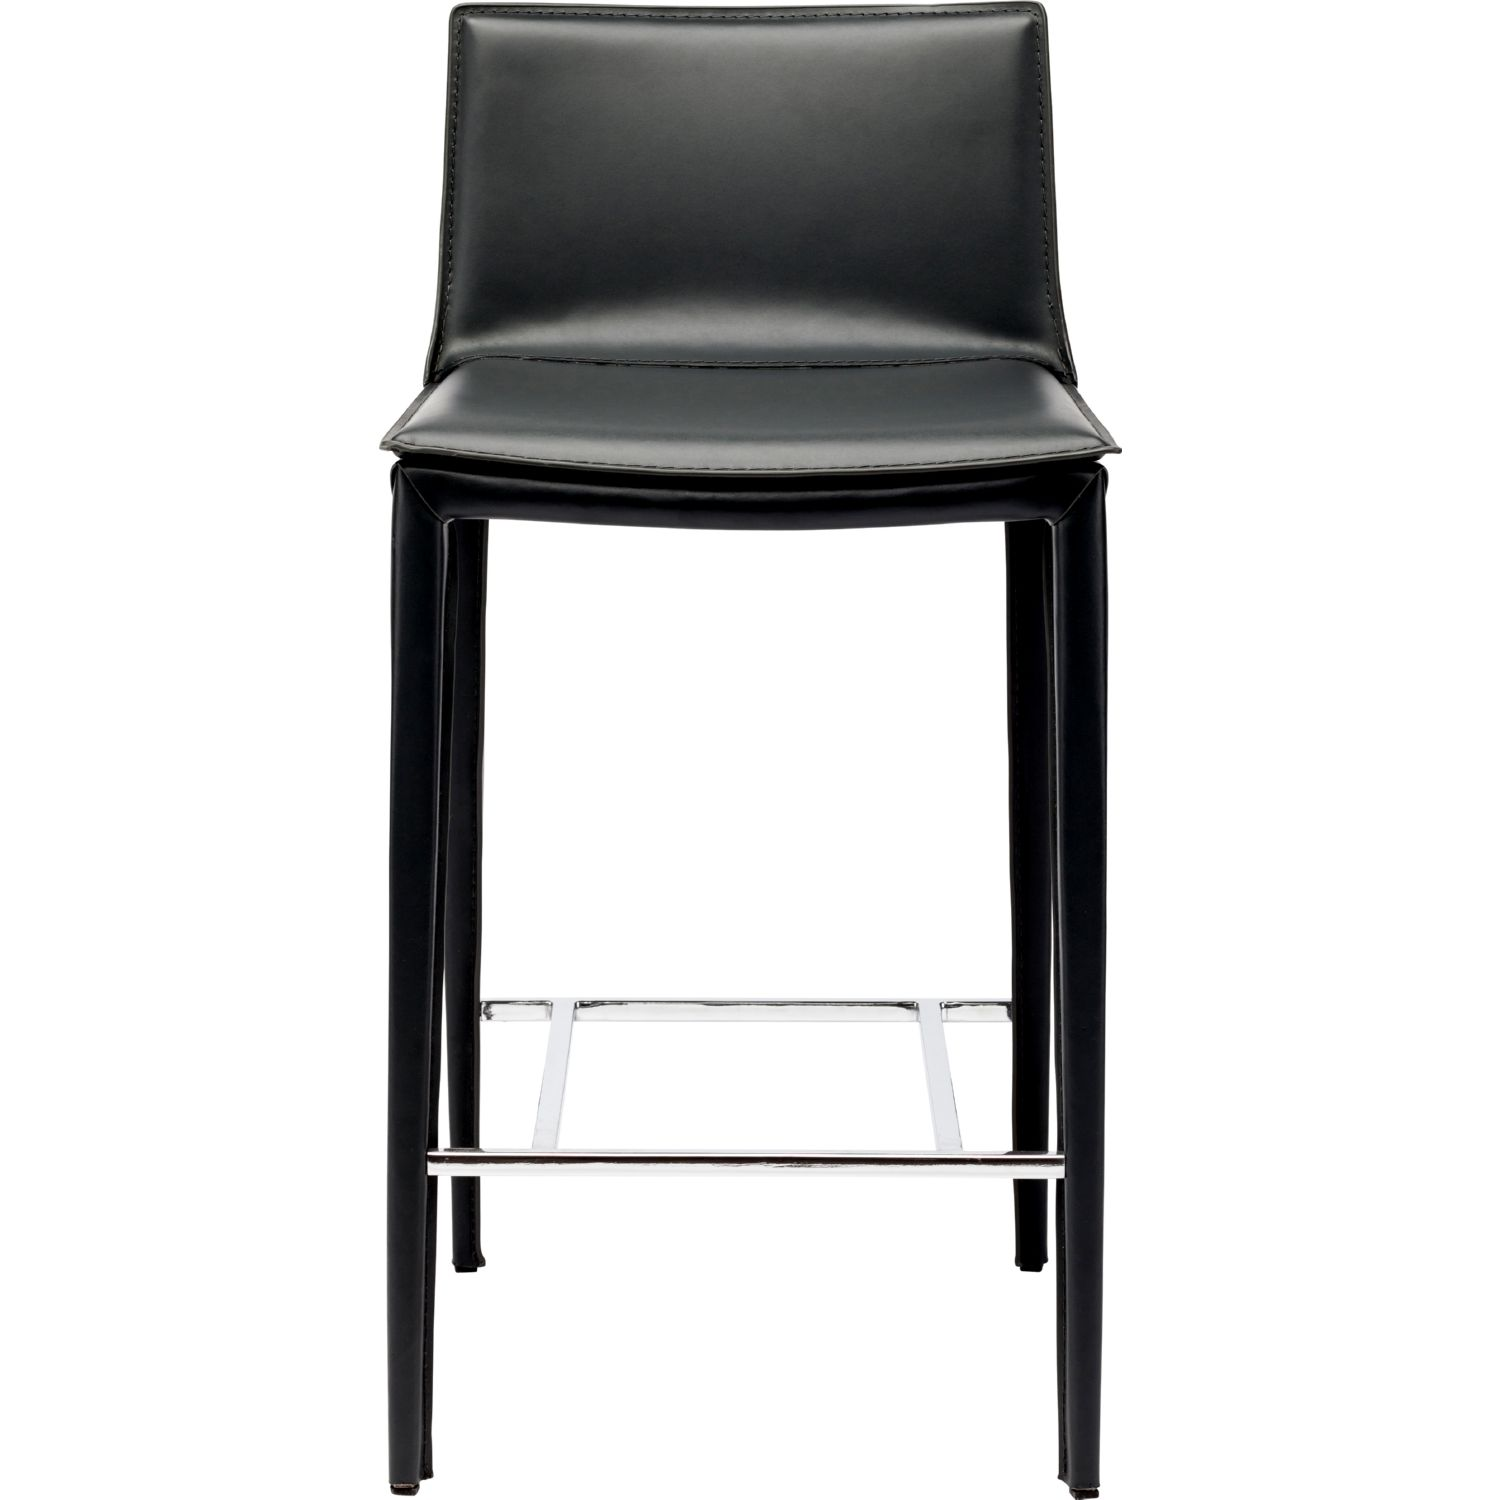 Nuevo Modern Furniture HGND112 Palma Counter Stool in Black Leather